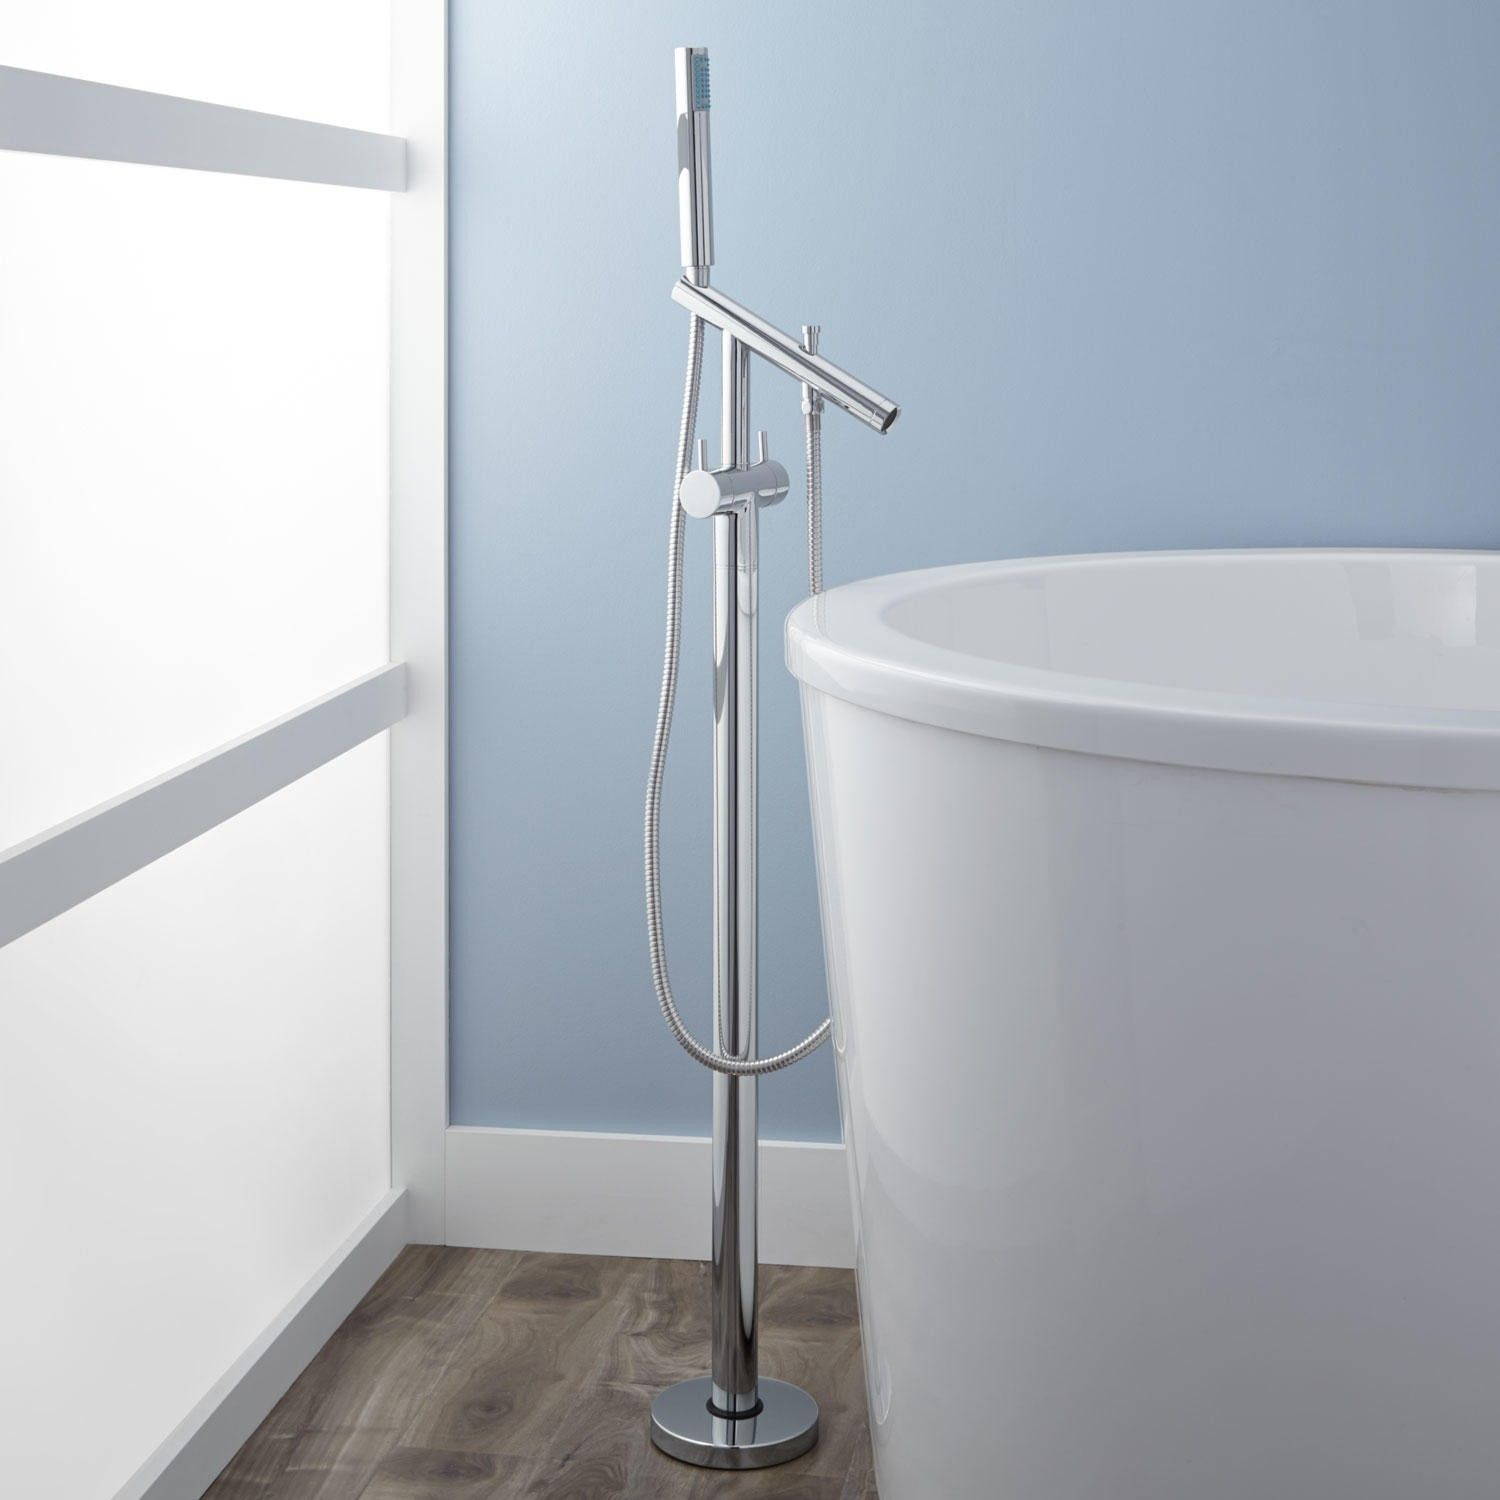 Westen Freestanding Tub Faucet | Freestanding tub, Faucet and Tubs